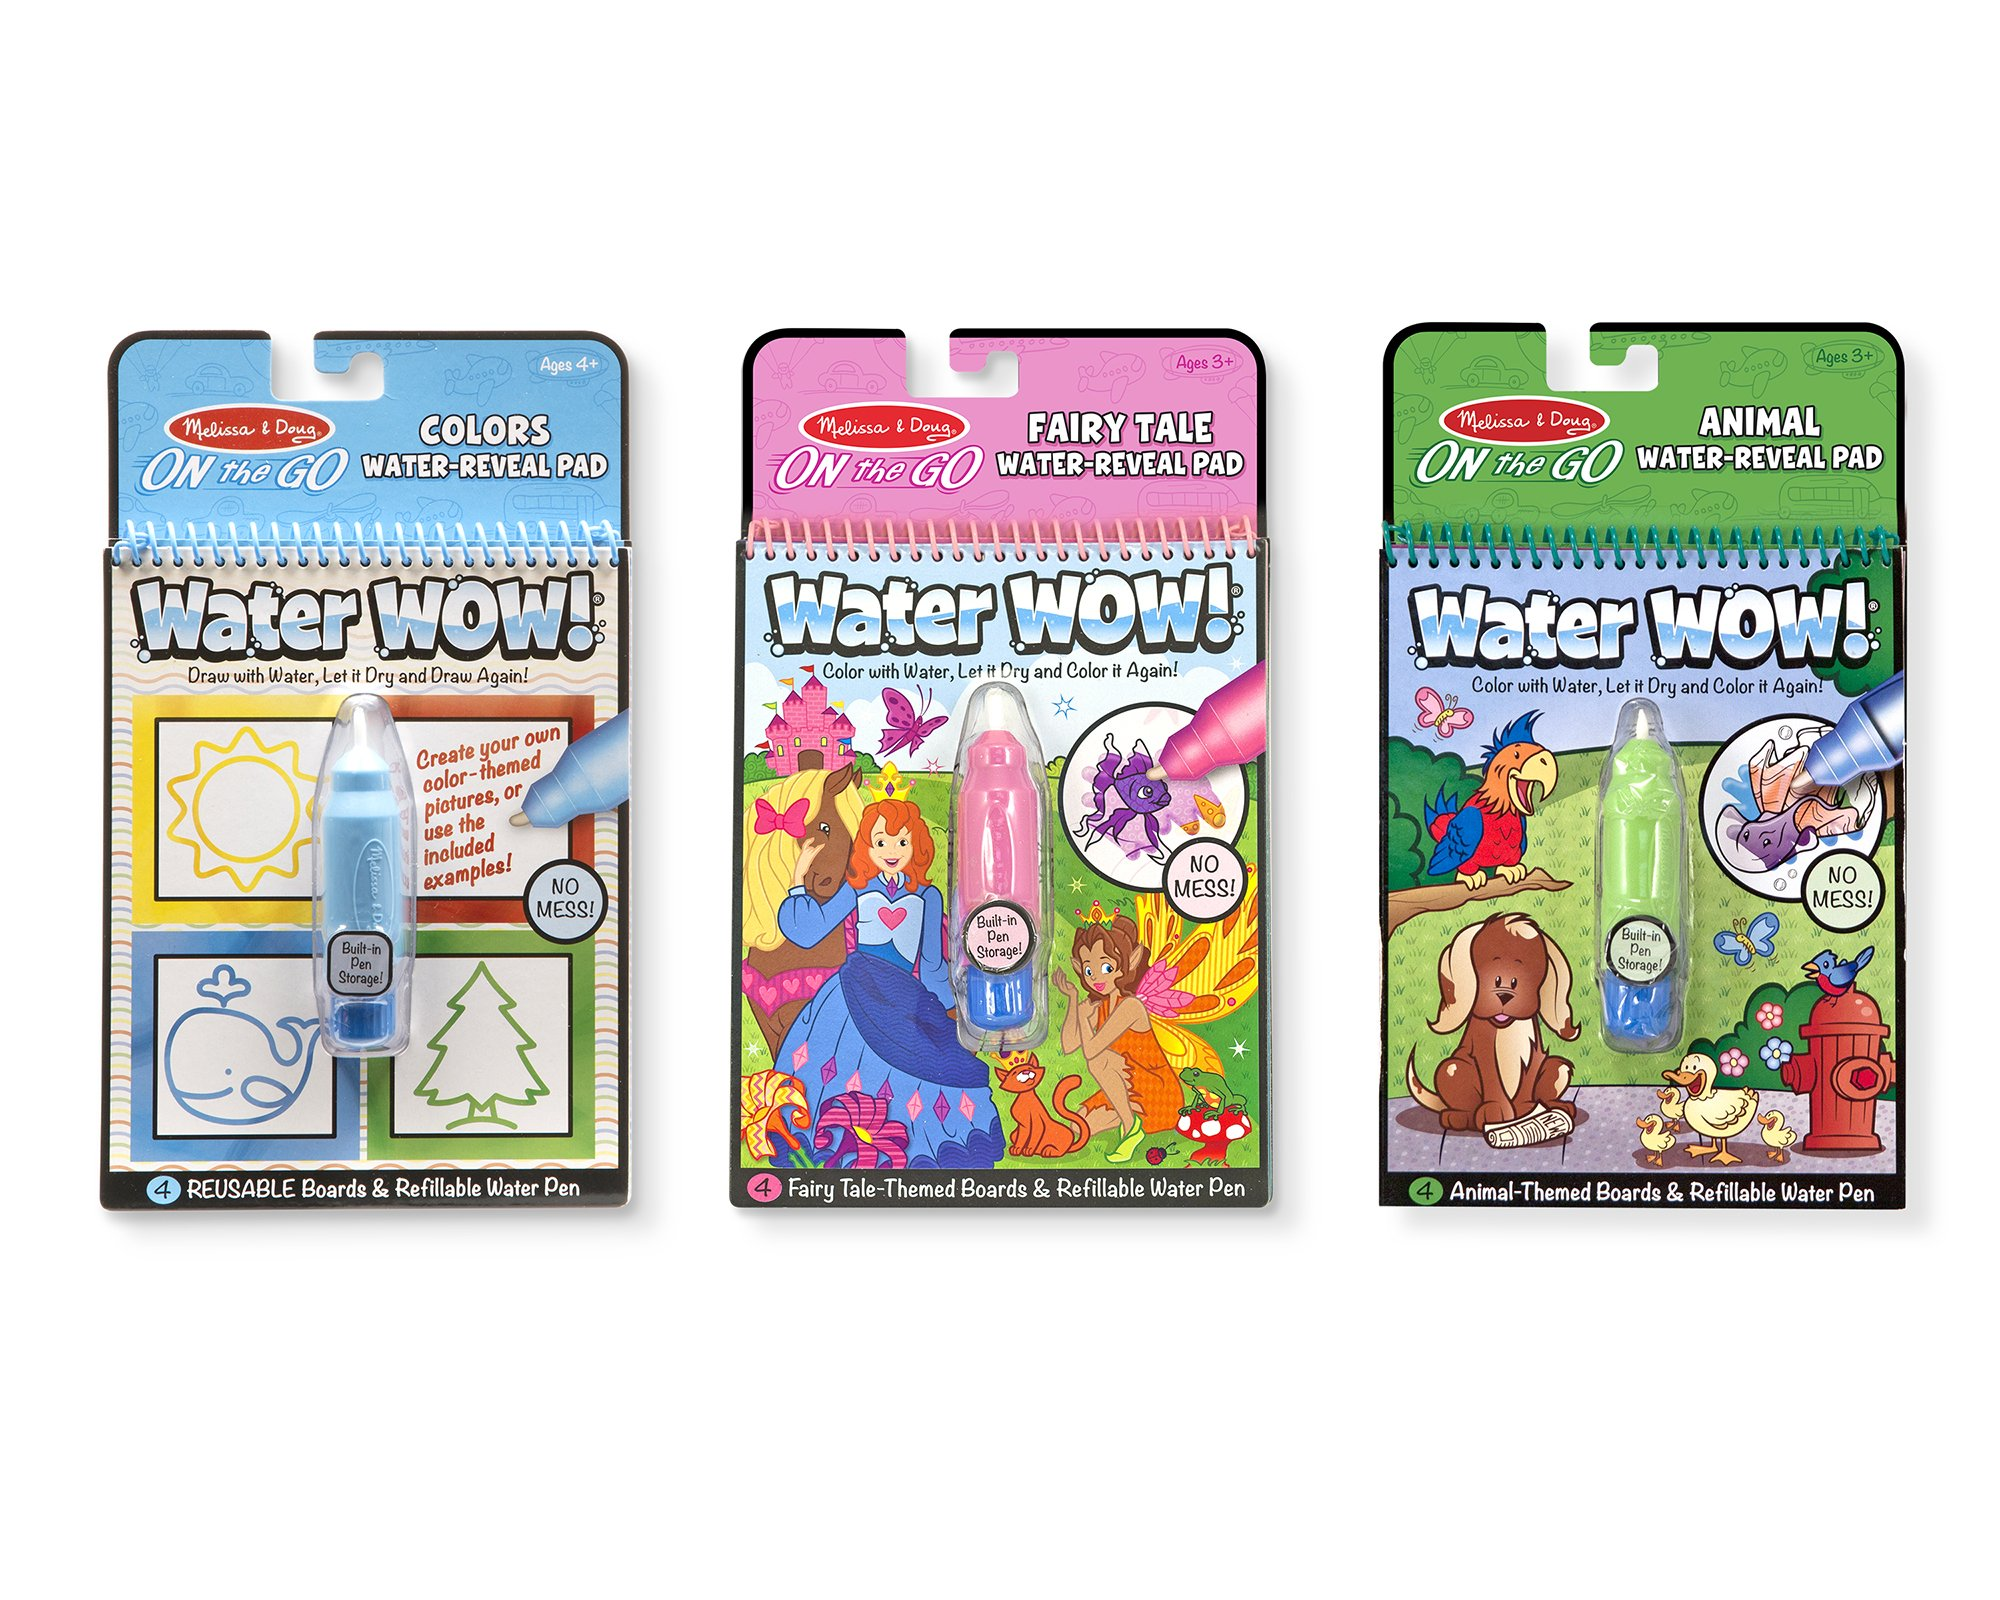 Melissa & Doug On the Go Water Wow! Reusable Water-Reveal Activity Pads, 3-pk, Colors and Shapes, Fairy Tales, Animals